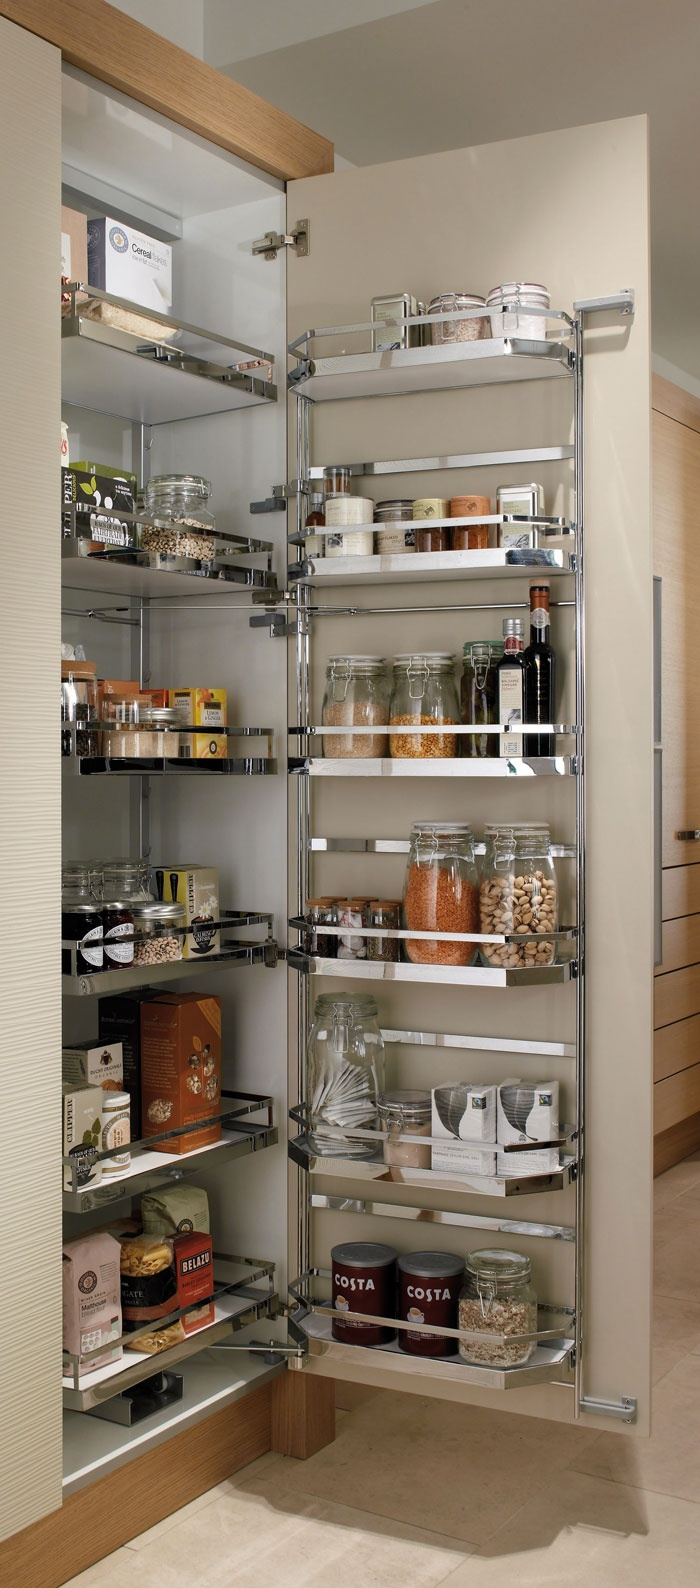 kitchen storage design ideas 31 amazing storage ideas for small kitchens 20054